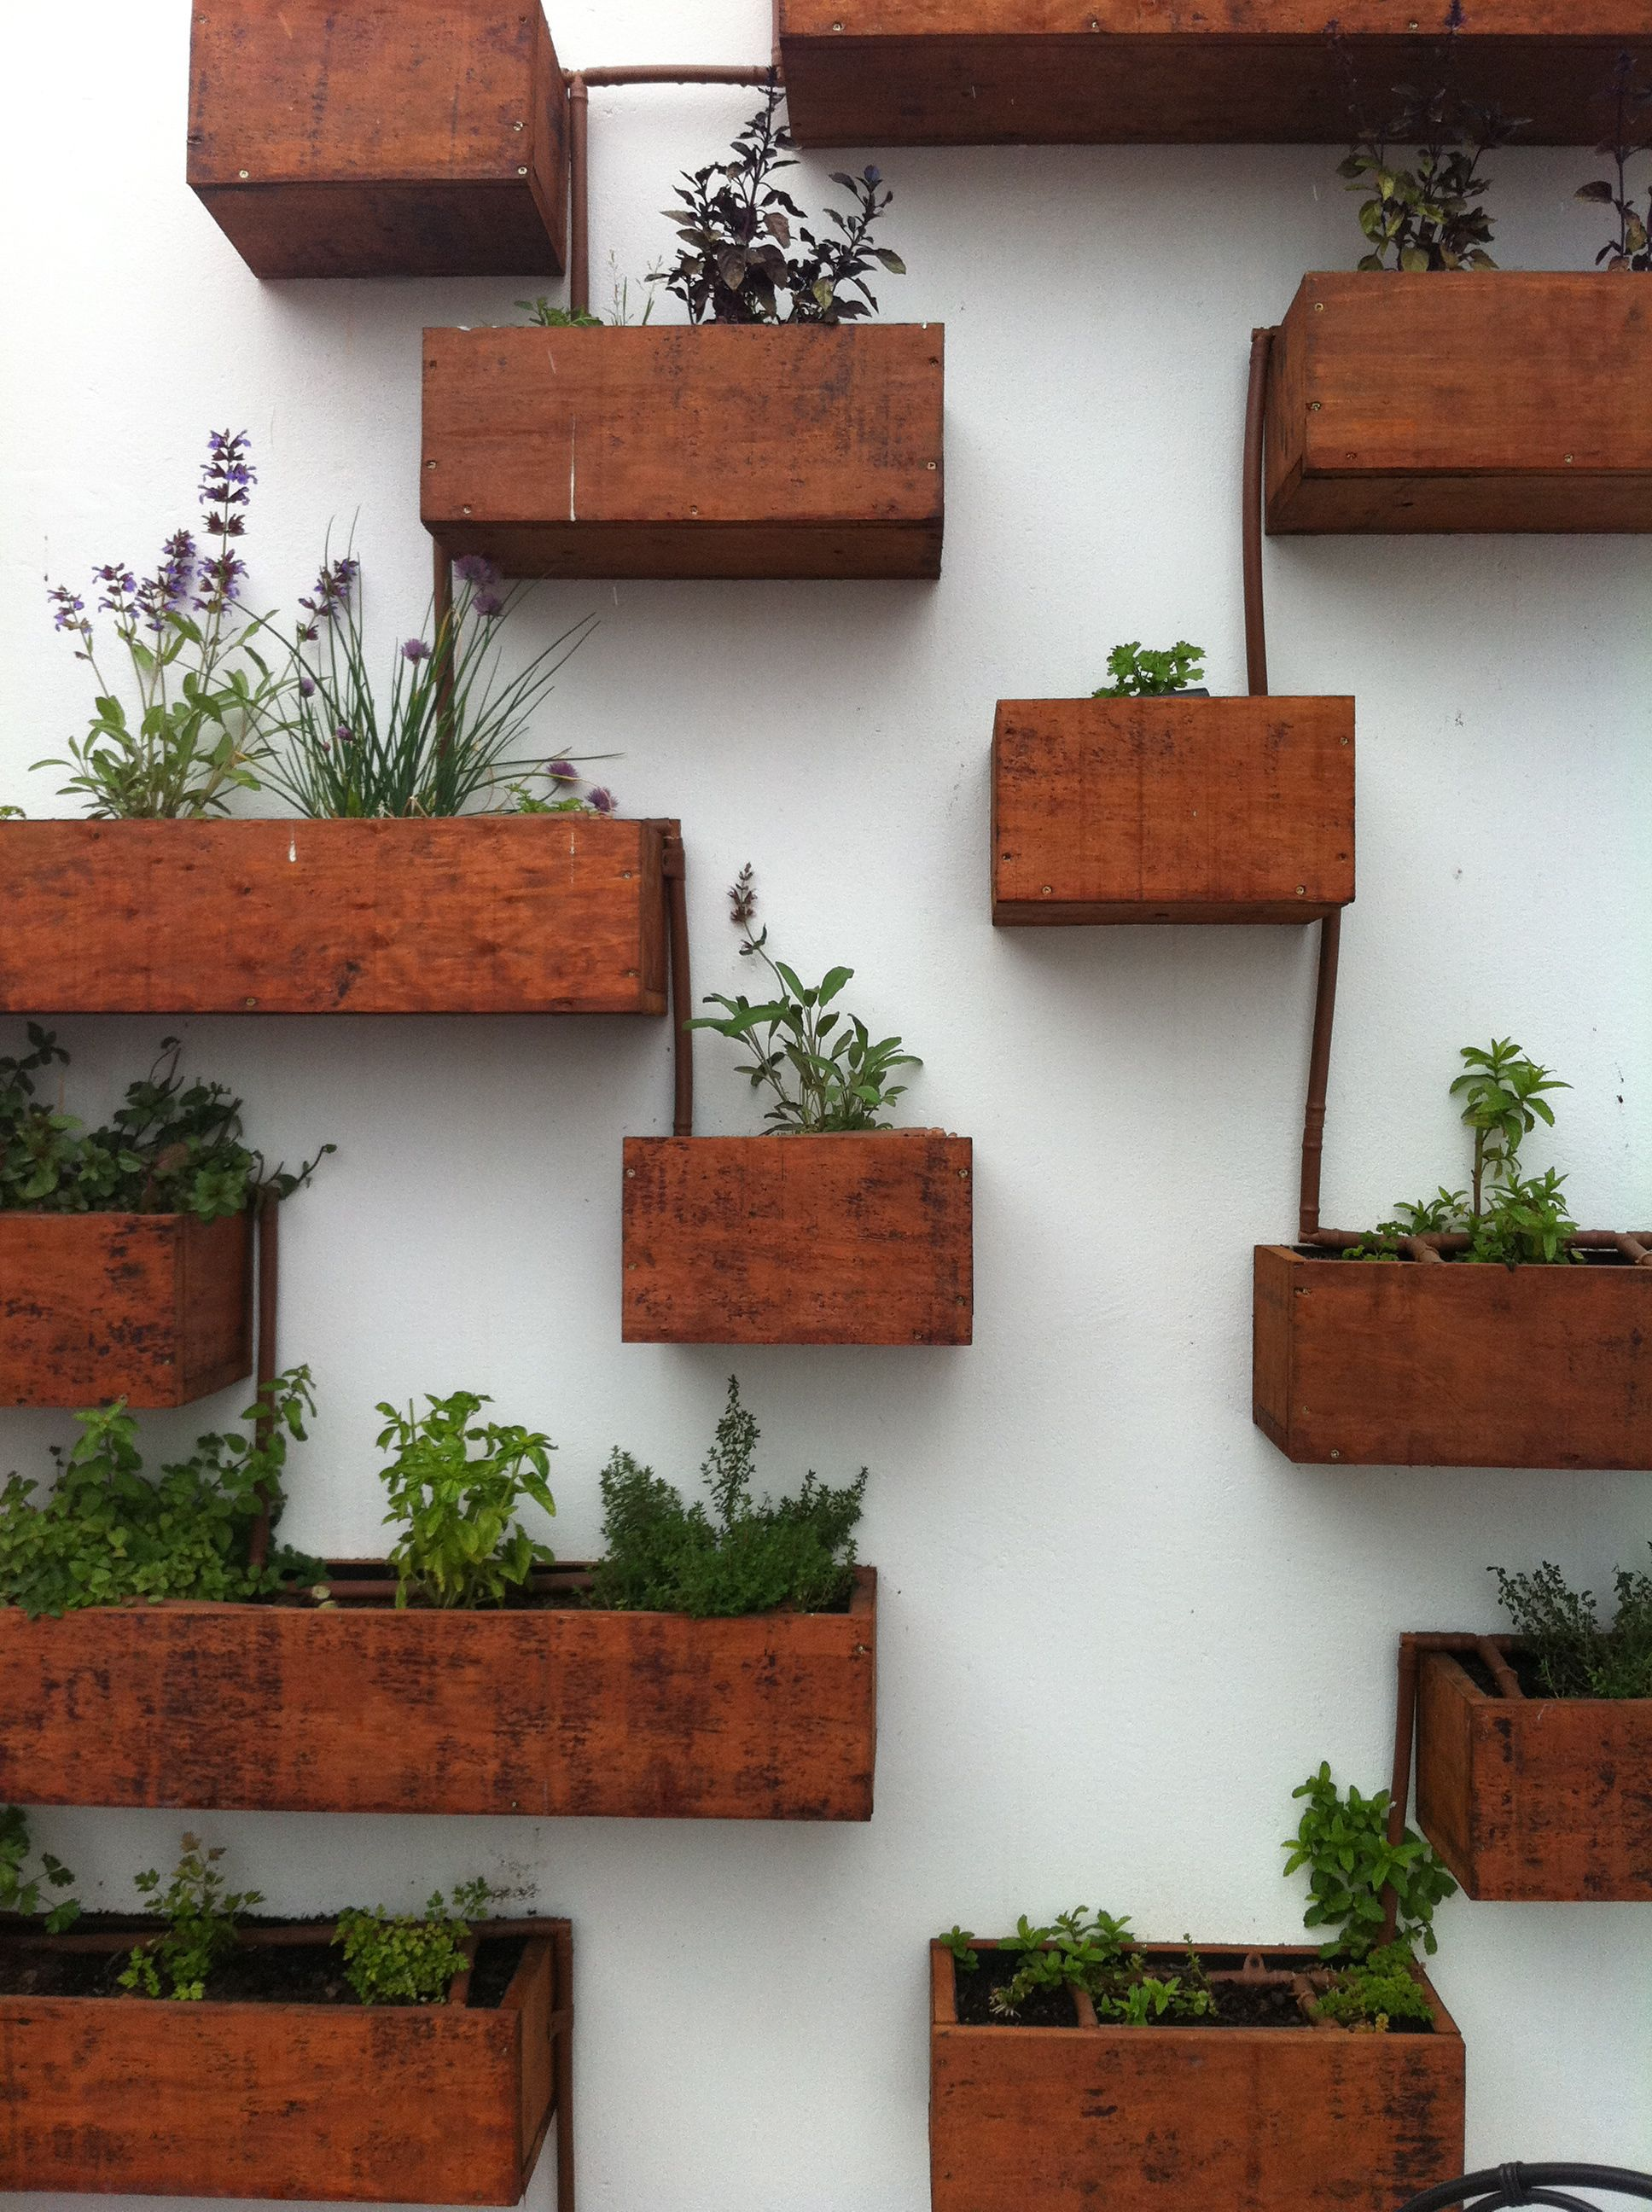 Connected Wood Box Floating Planters Vertical Garden 400 x 300